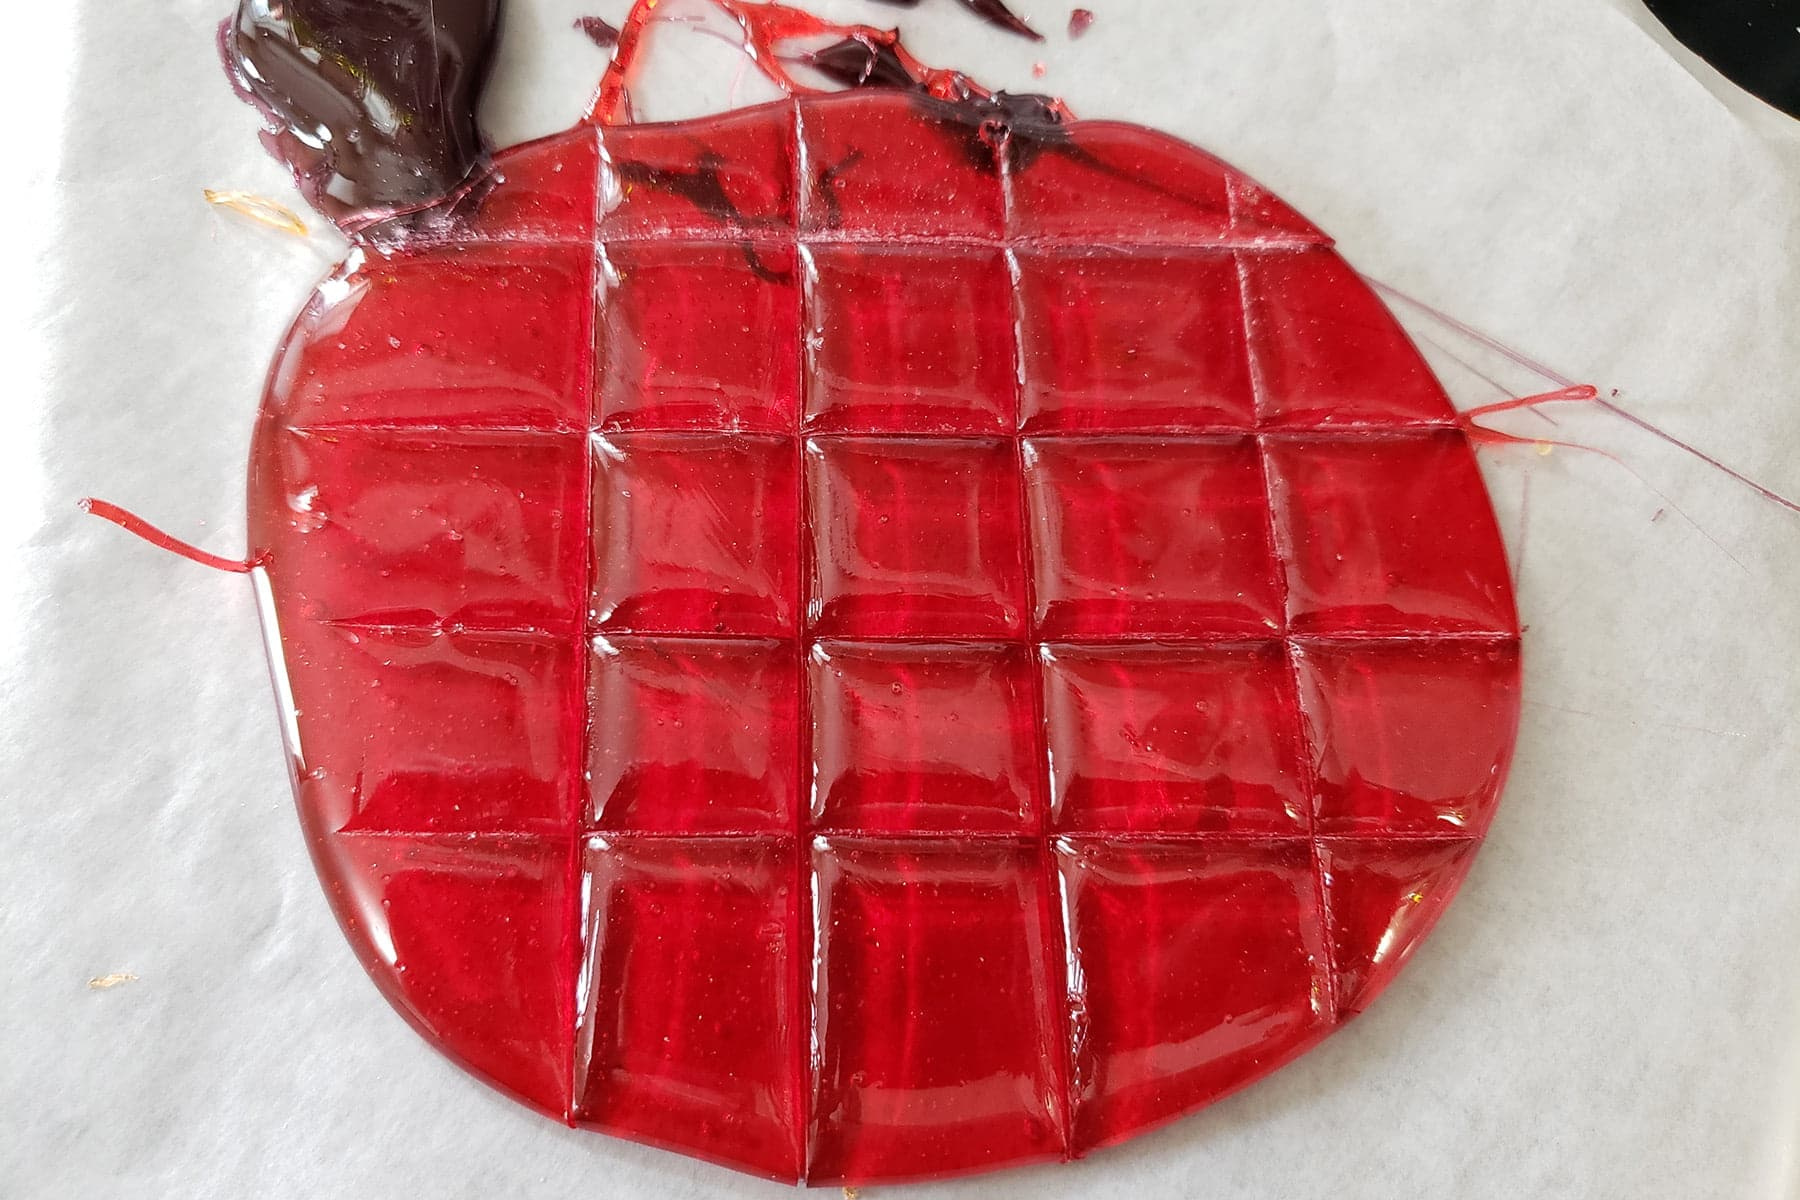 A red round of hard candy is shown with score marks in a grid pattern.